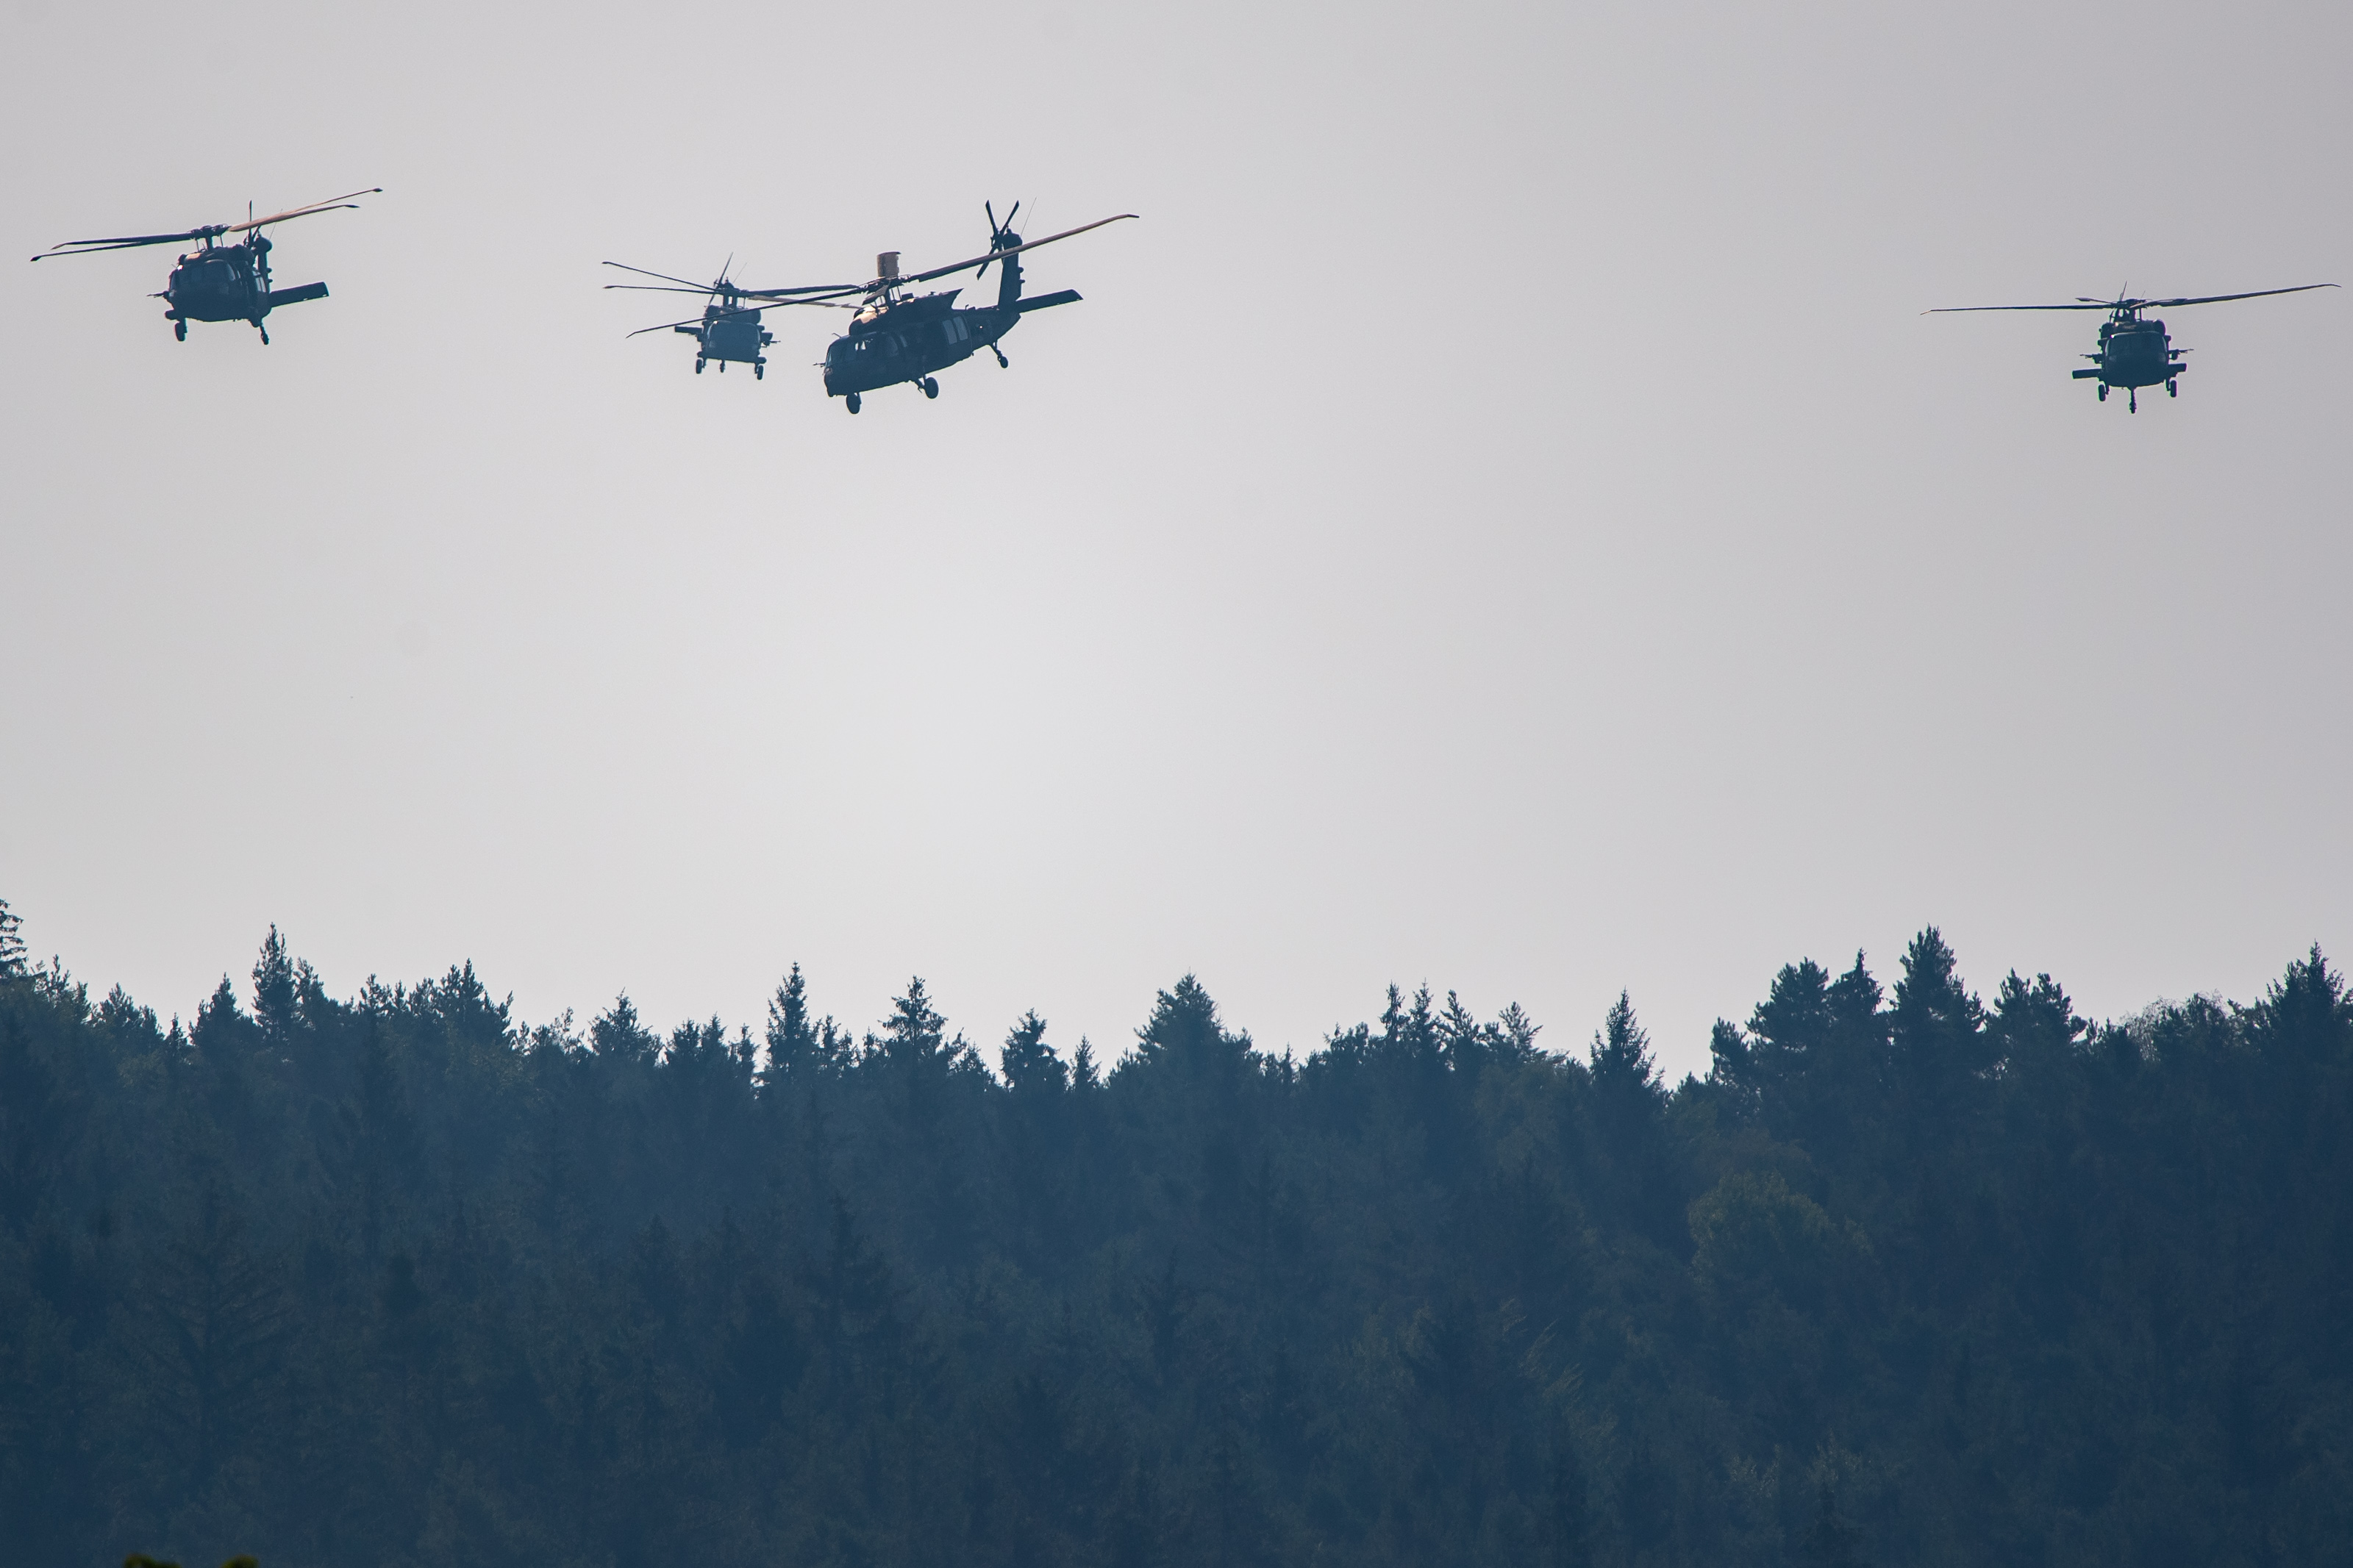 Black Hawk UH-60 helicopters fly by while participating in the Saber Junction 20 military exercises at the Hohenfels training grounds on August 10, 2020 near Hohenfels, Germany. (Photo by Lennart Preiss/Getty Images)